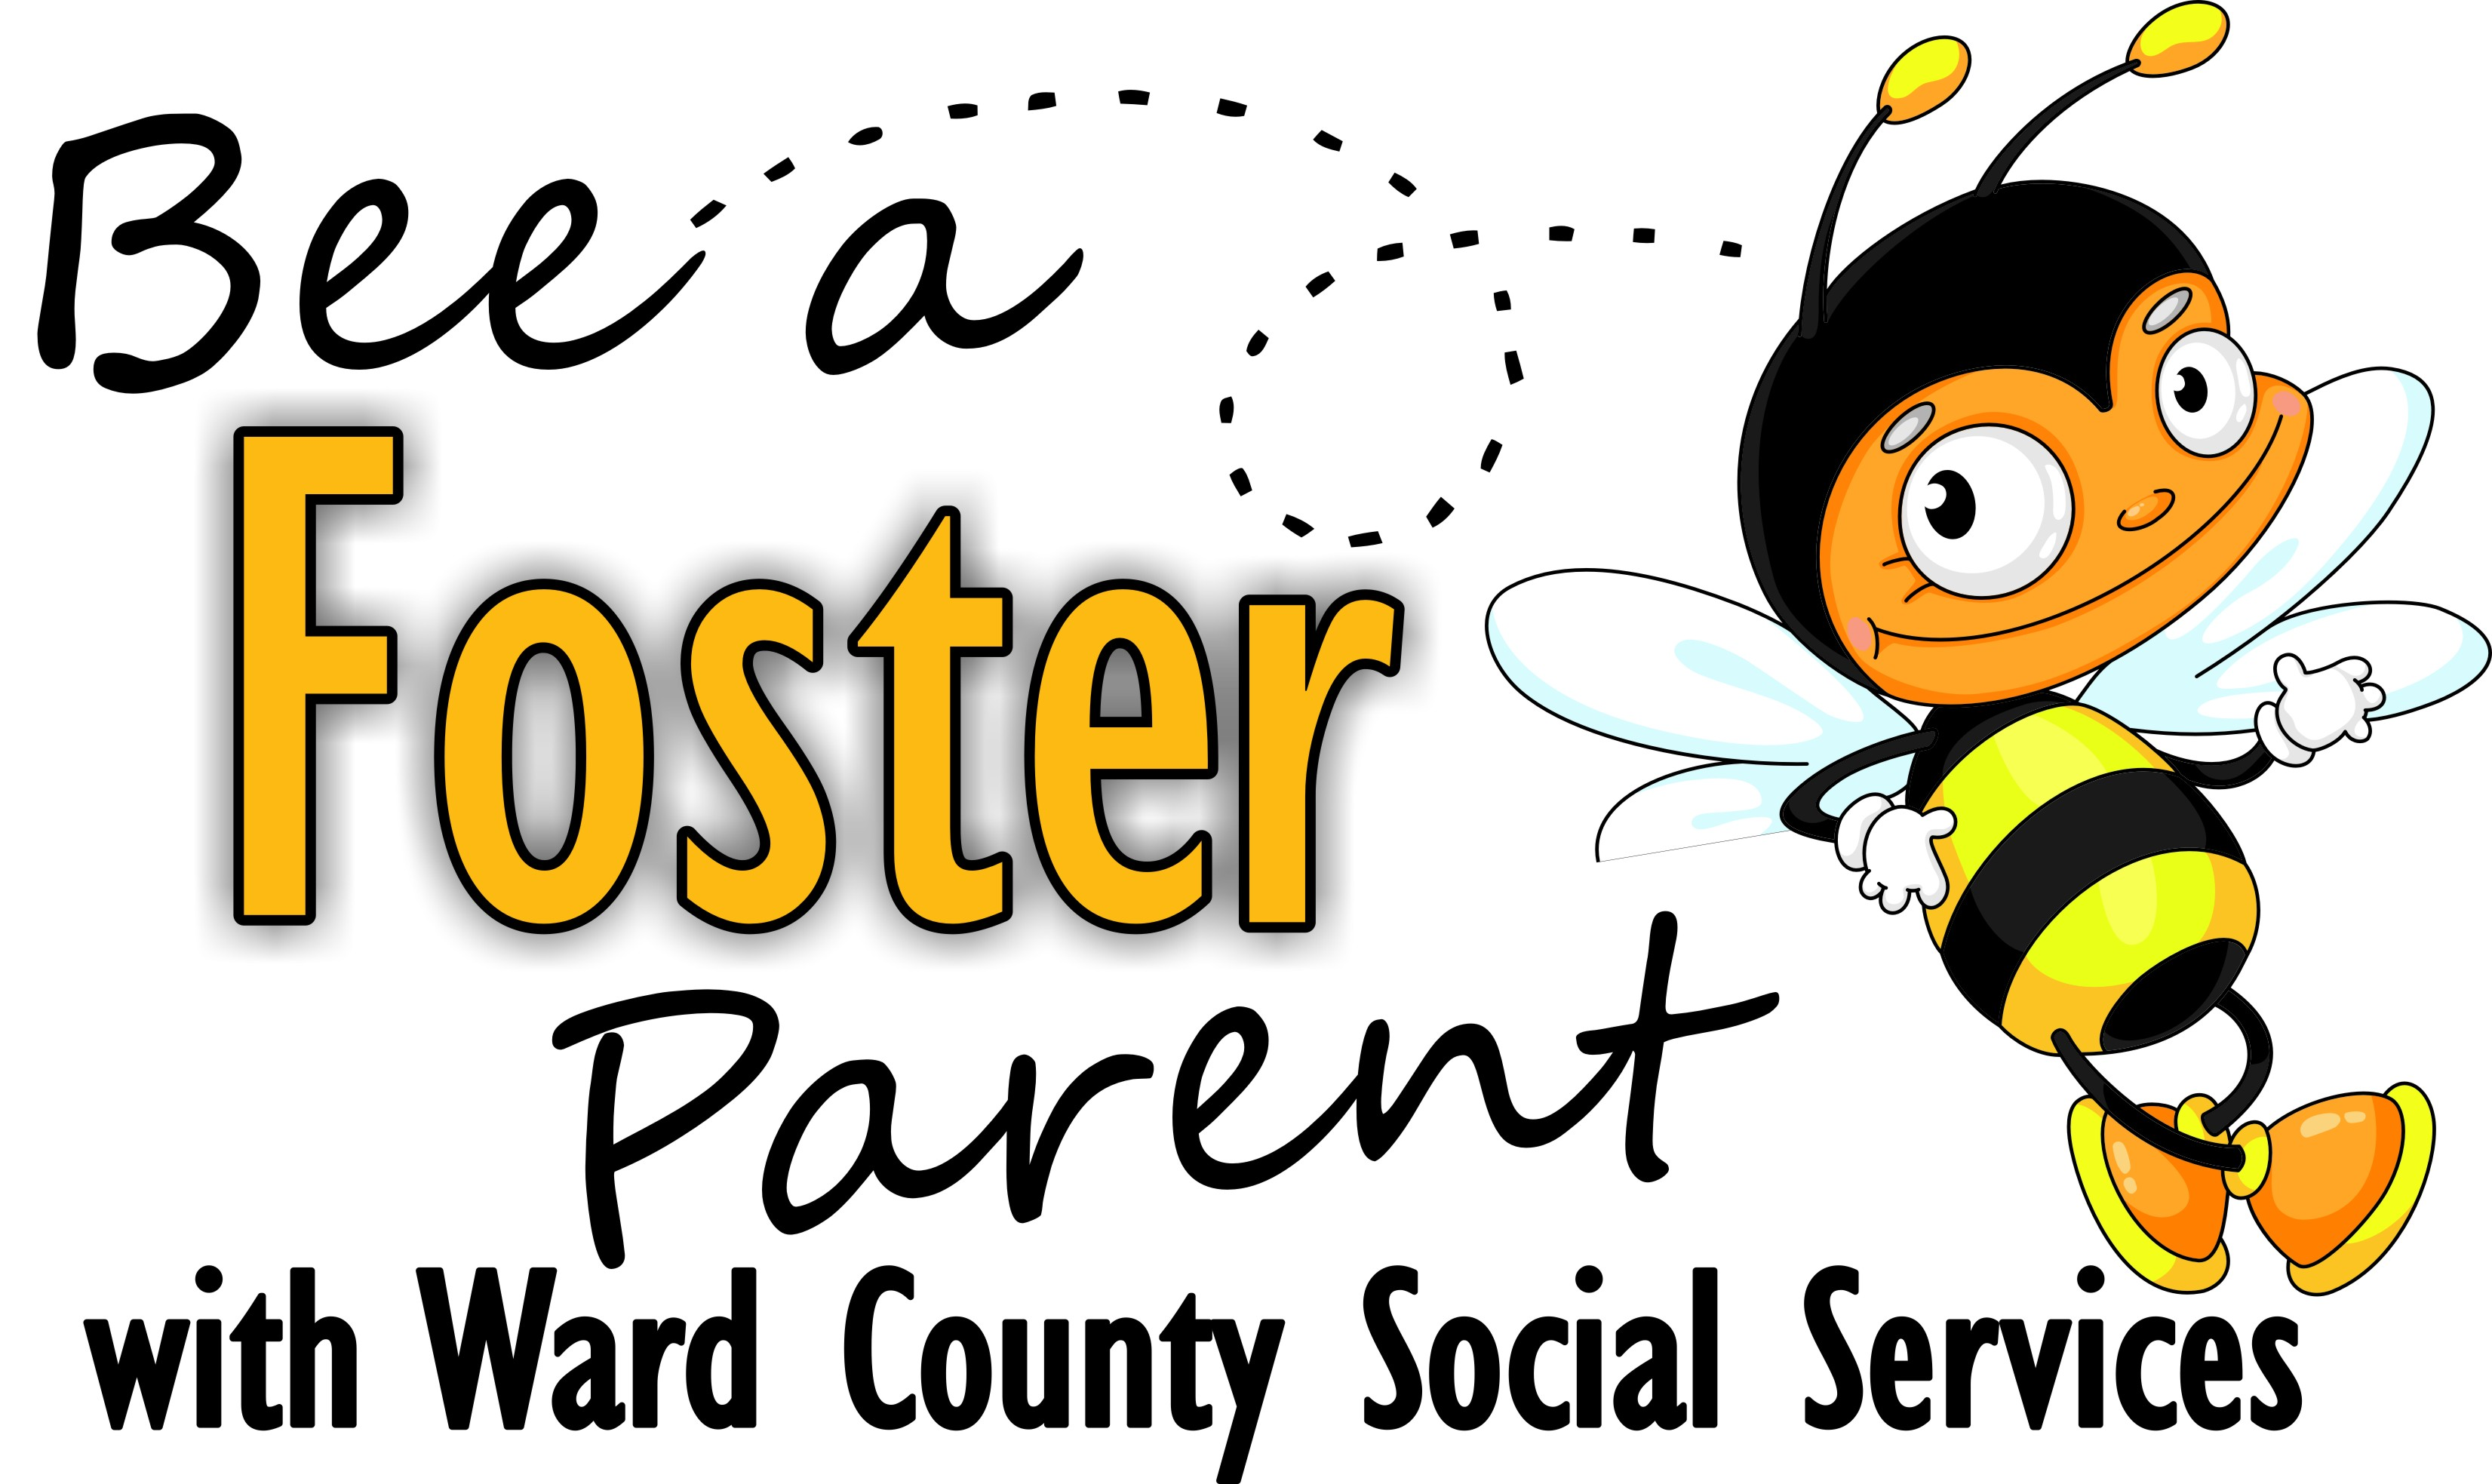 Bee a Foster Parent